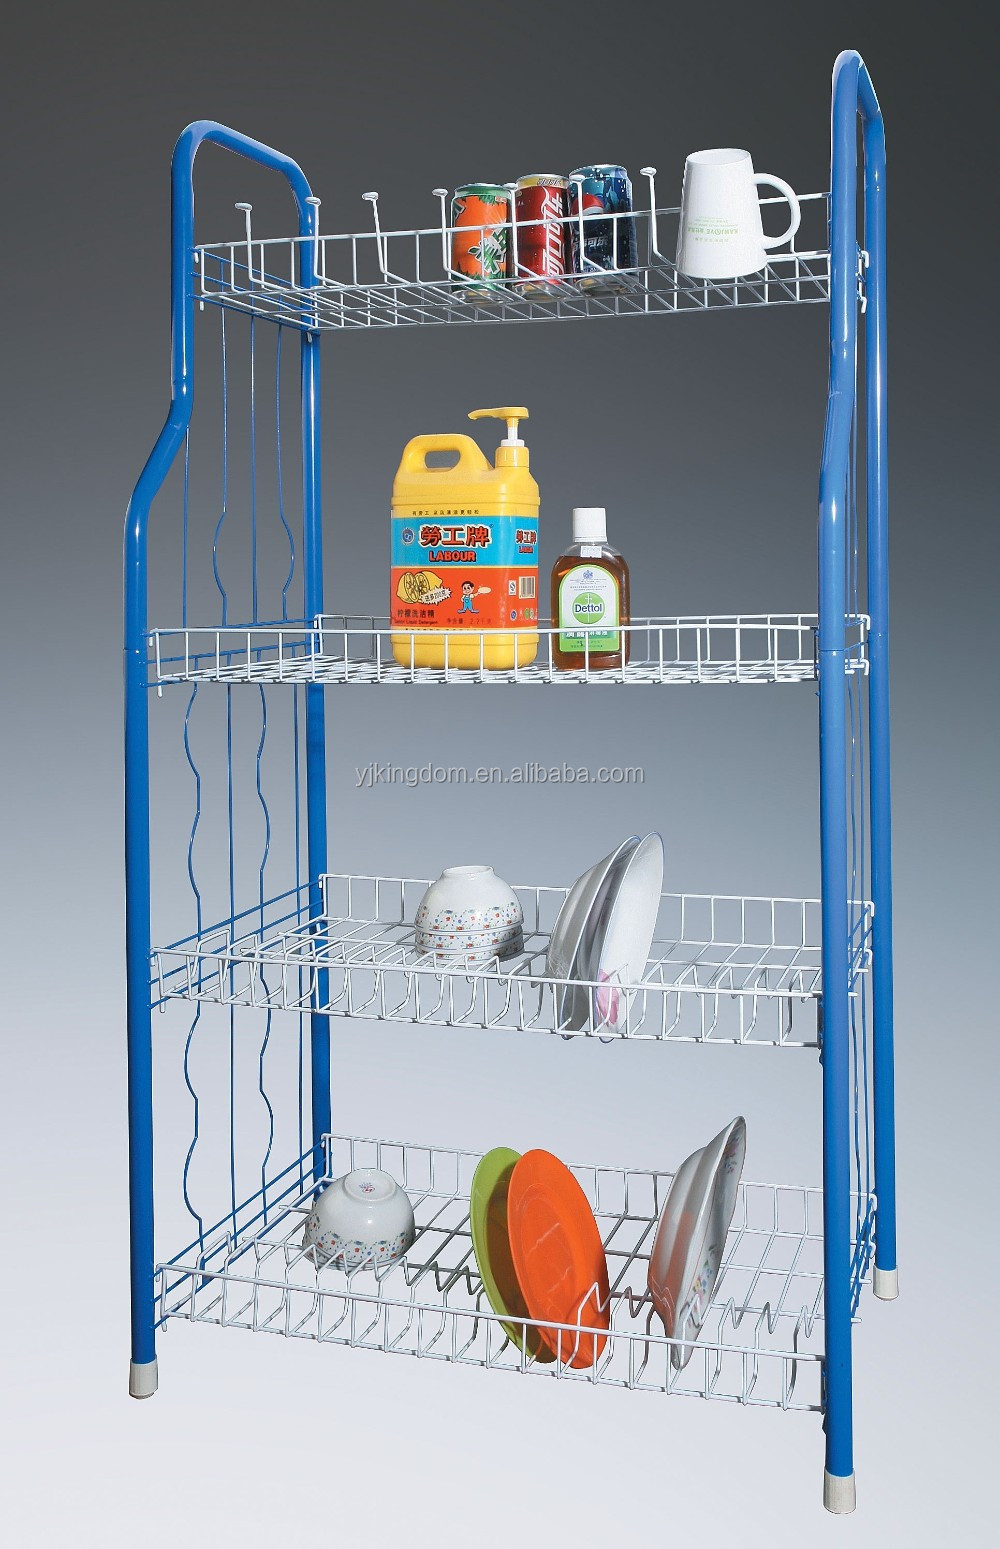 123-38 4-tier vegetable&fruit storage shelf kitchen rack